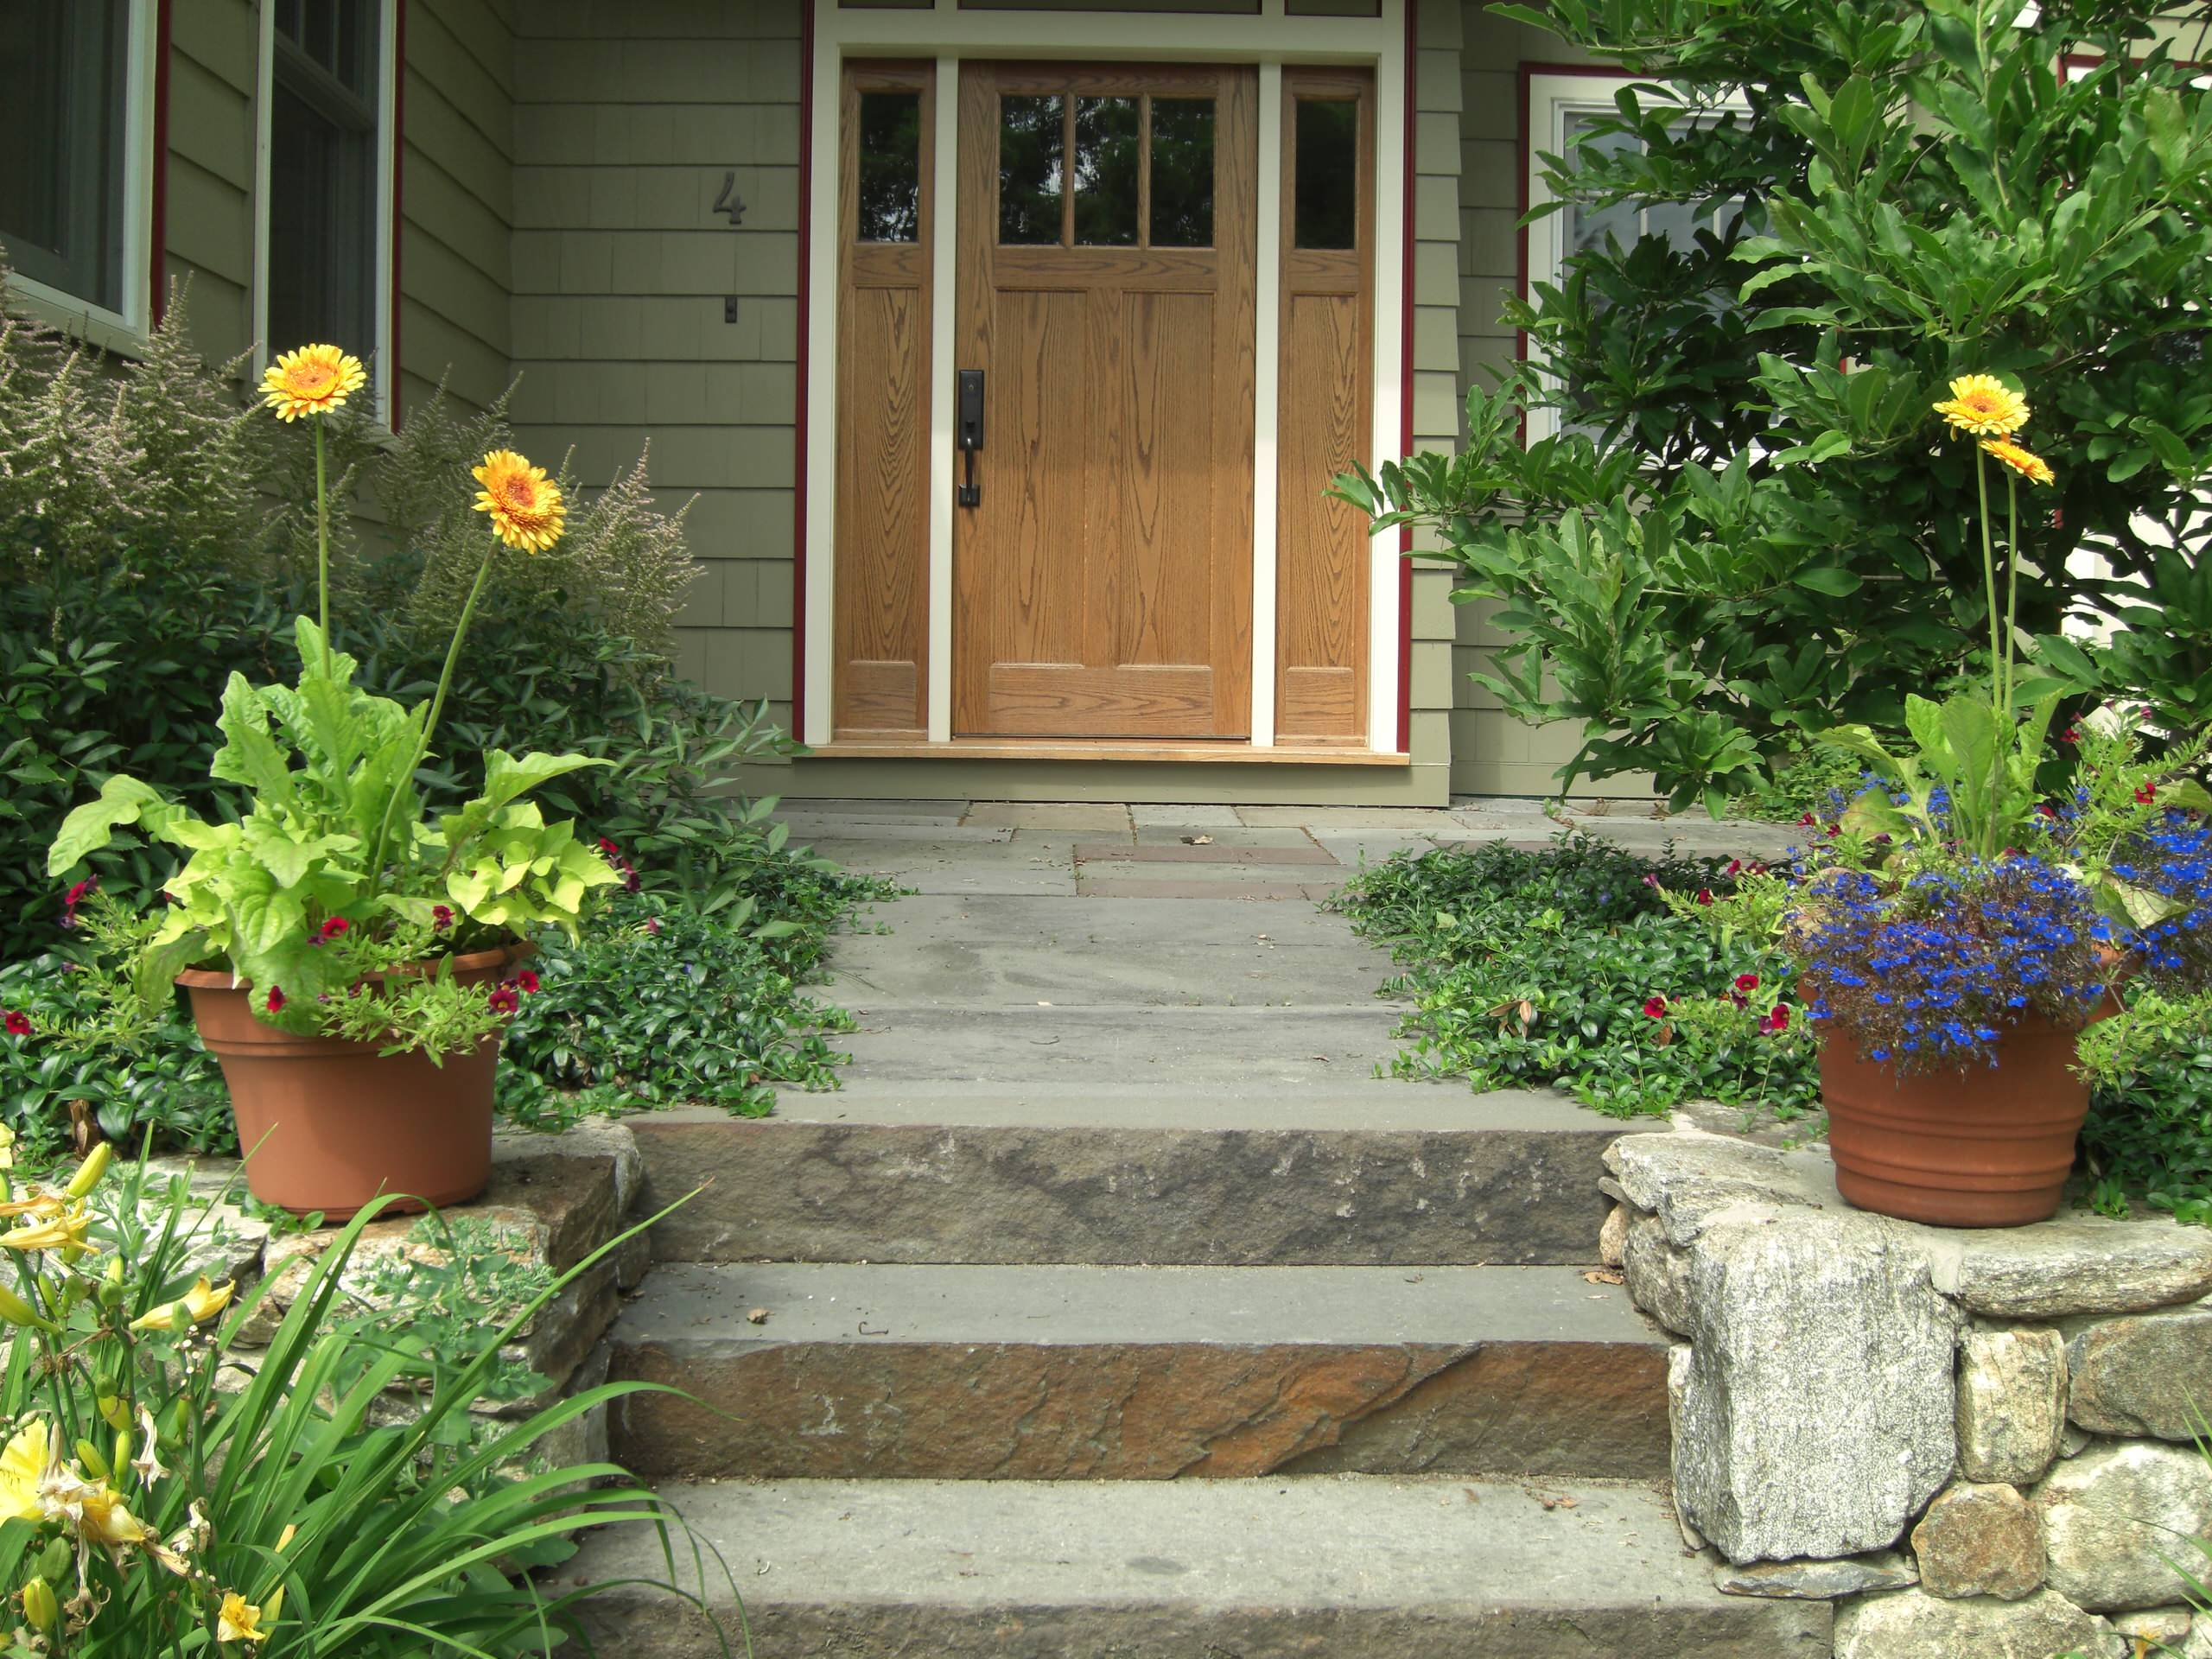 This is the home entrance the owners use every day.